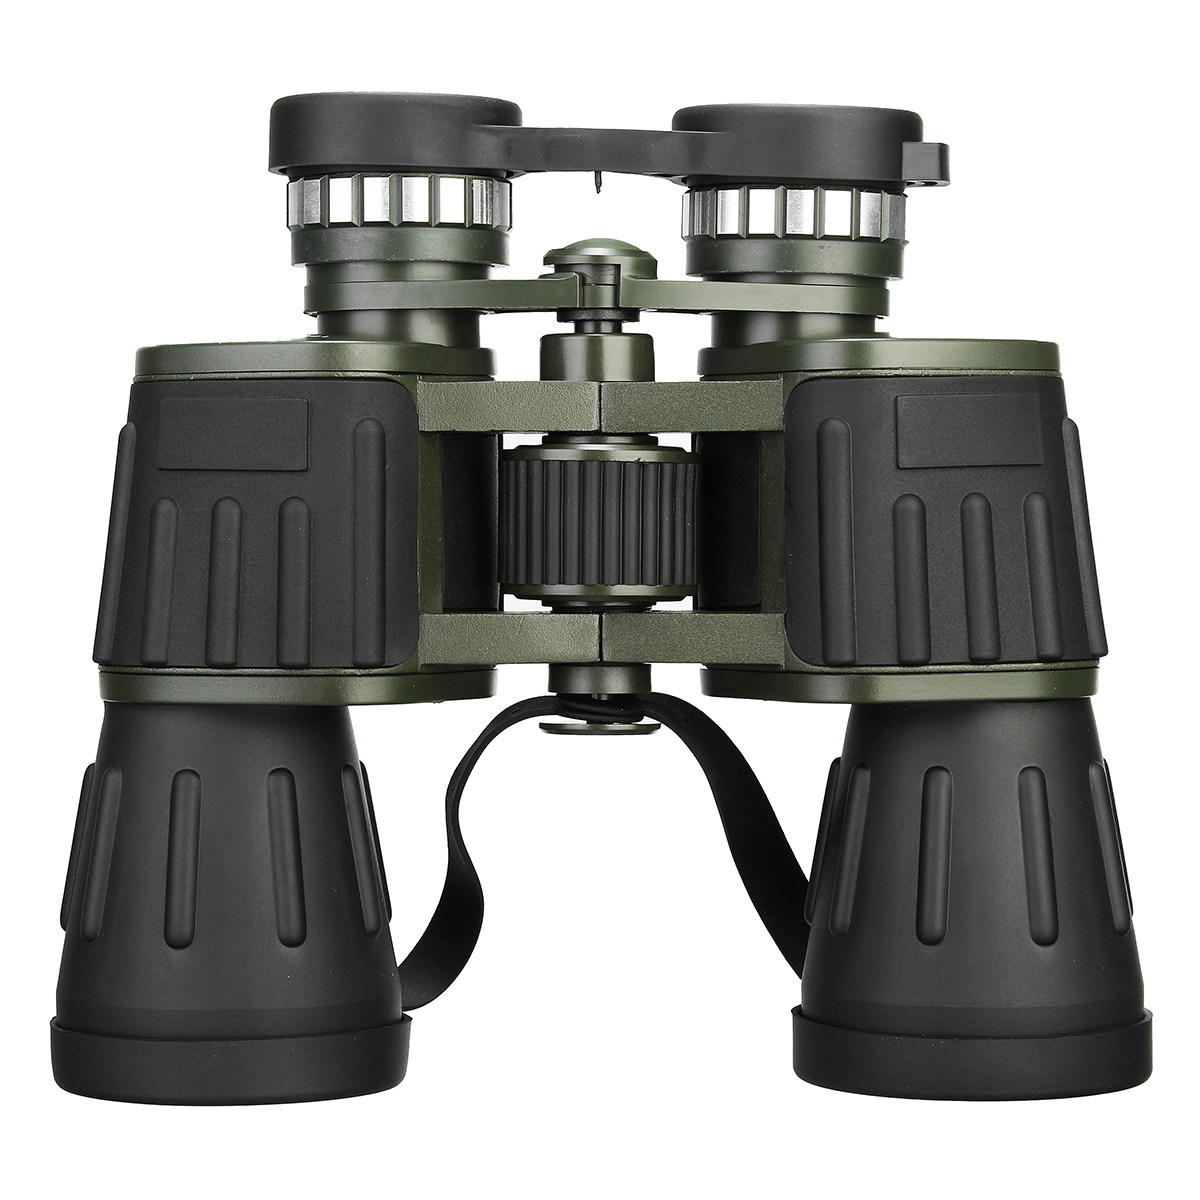 Night Vision 60x50 Military Army Zoomable Powerful Binoculars HD for Outdoor hiking Hunting Camping equipment survival kit zoom binoculars 30 260x160 level light night vision adjustable telescopes for camping hiking hunting ems